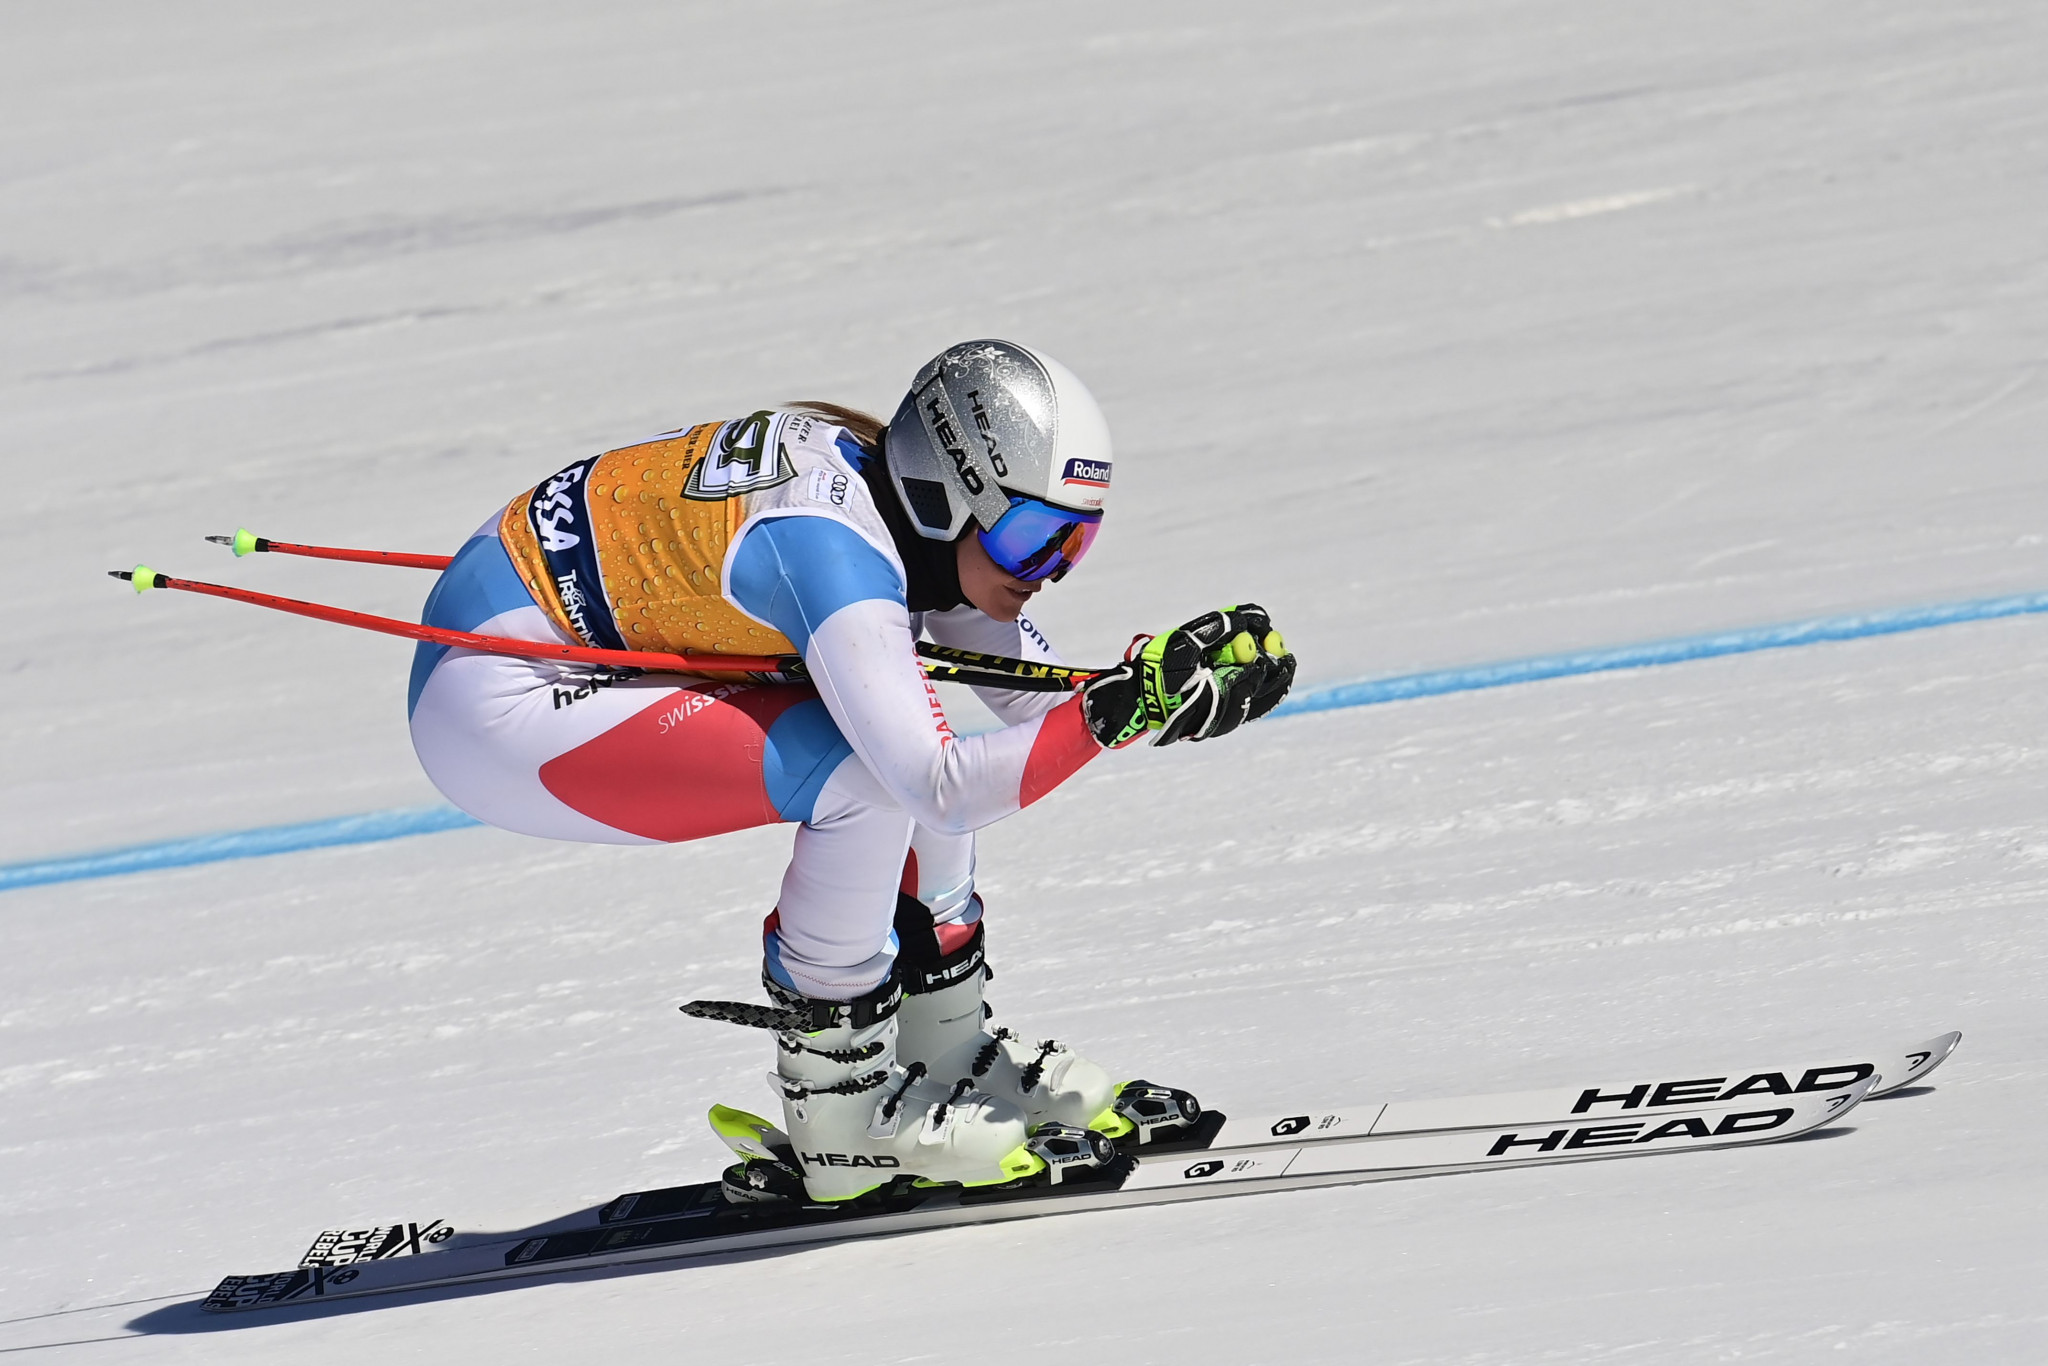 Newly-crowned world champions return to FIS Alpine Ski World Cup action in Val di Fassa